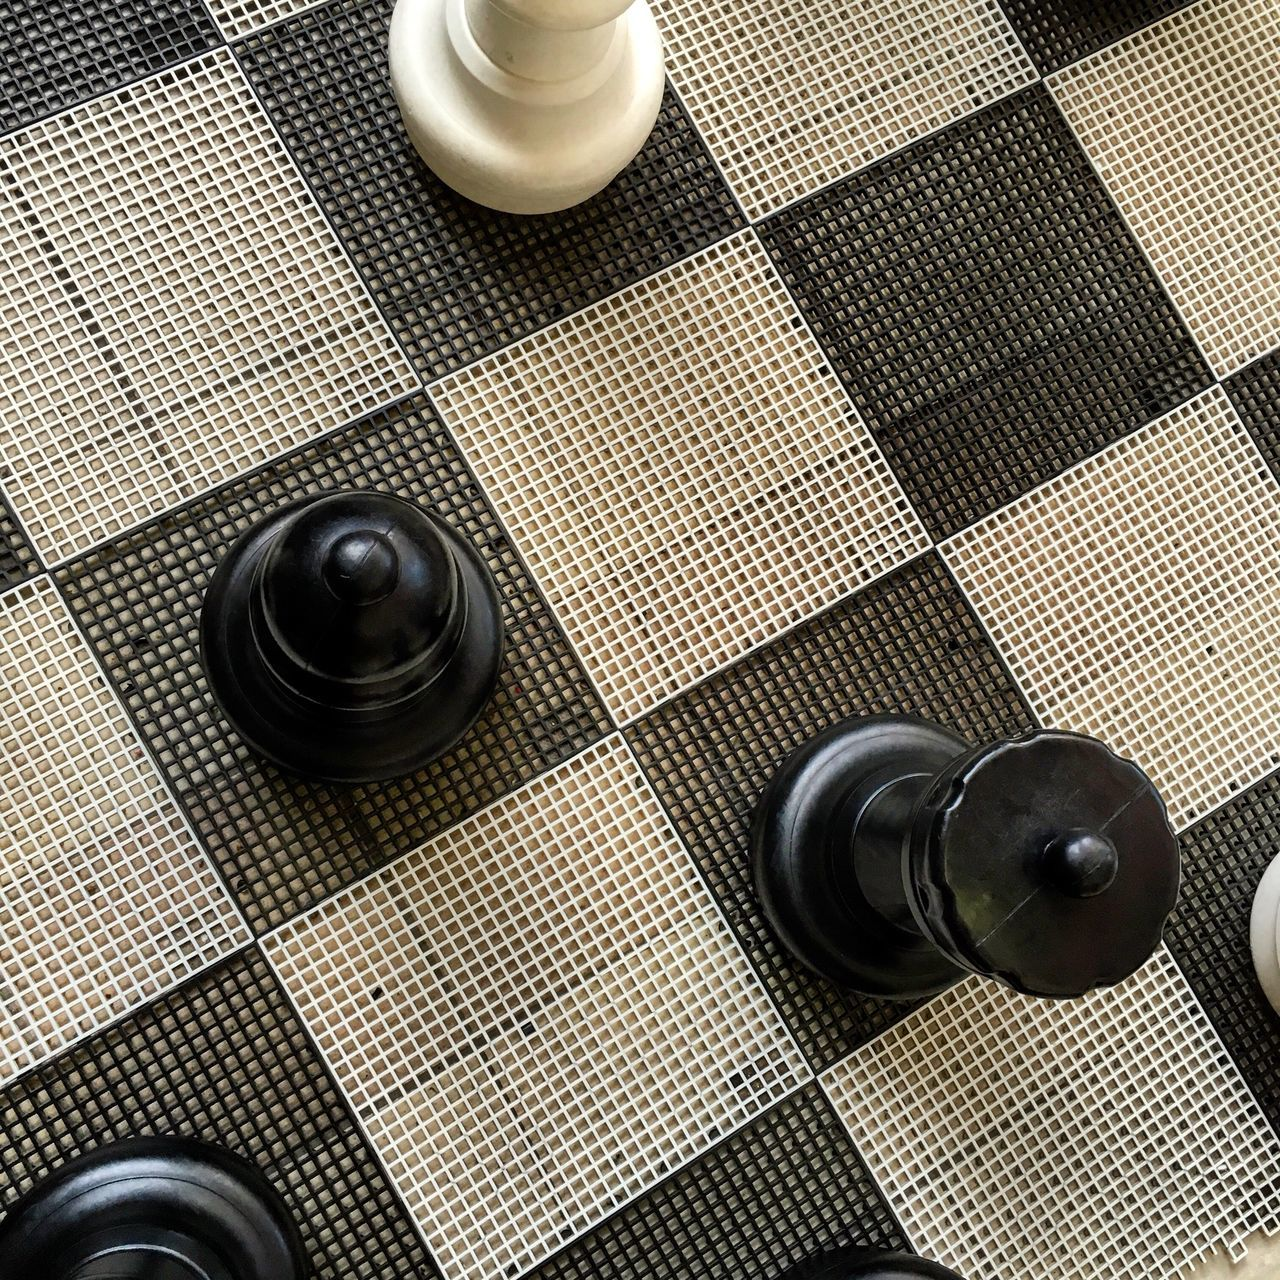 No People Close-up Indoors  Day Chessboard Chesspieces Chessgame Chess Board Chess Game Chess Set Chess